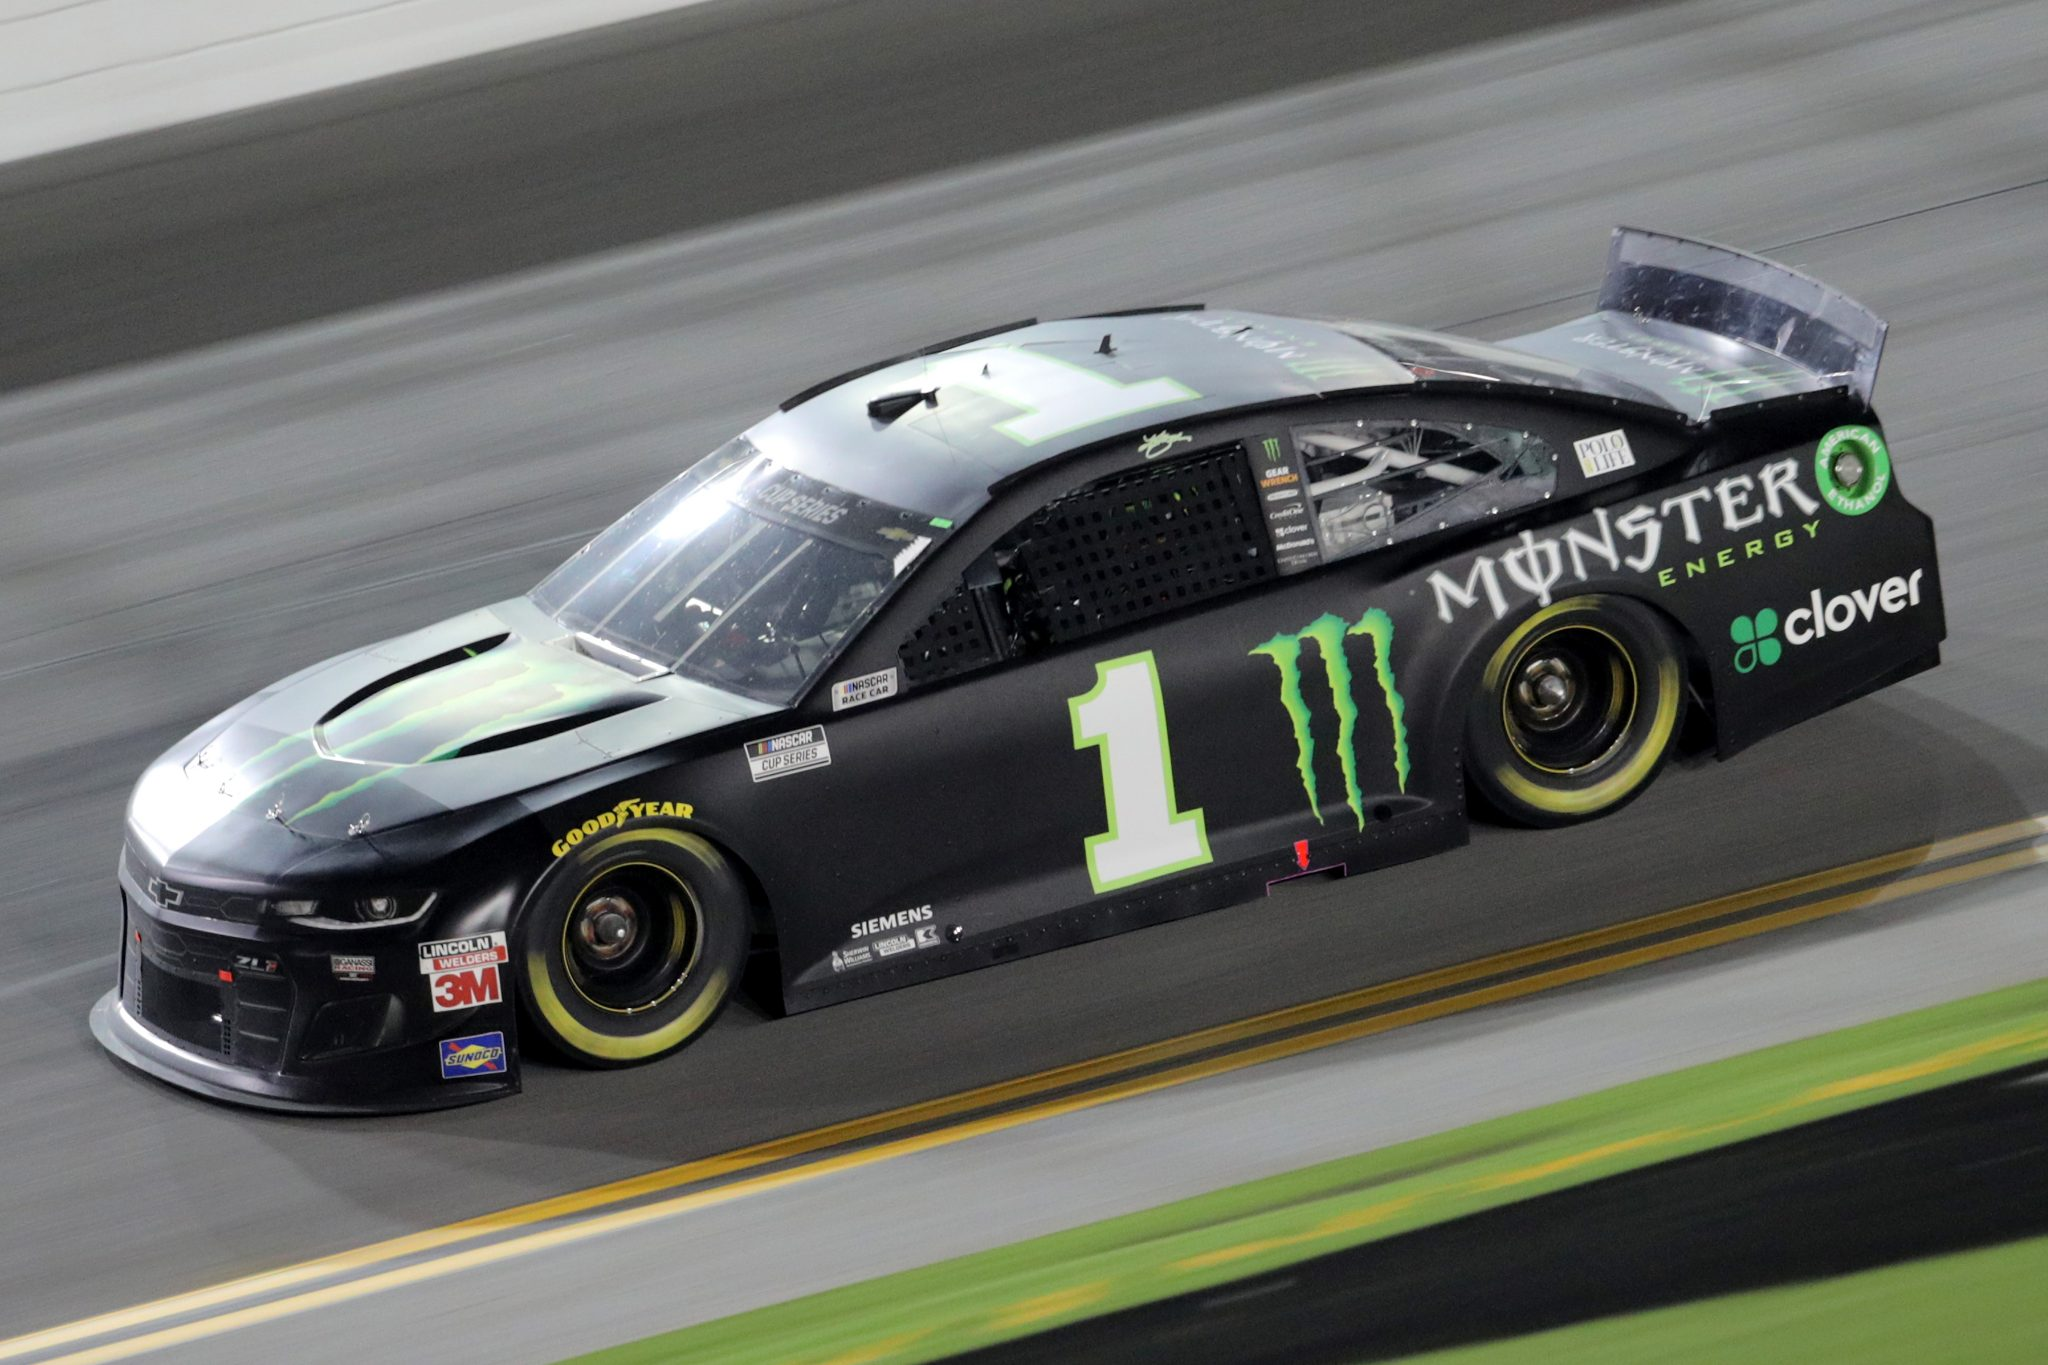 DAYTONA BEACH, FLORIDA - AUGUST 29: Kurt Busch, driver of the #1 Monster Energy Chevrolet, races during the NASCAR Cup Series Coke Zero Sugar 400 at Daytona International Speedway on August 29, 2020 in Daytona Beach, Florida. (Photo by Chris Graythen/Getty Images) | Getty Images